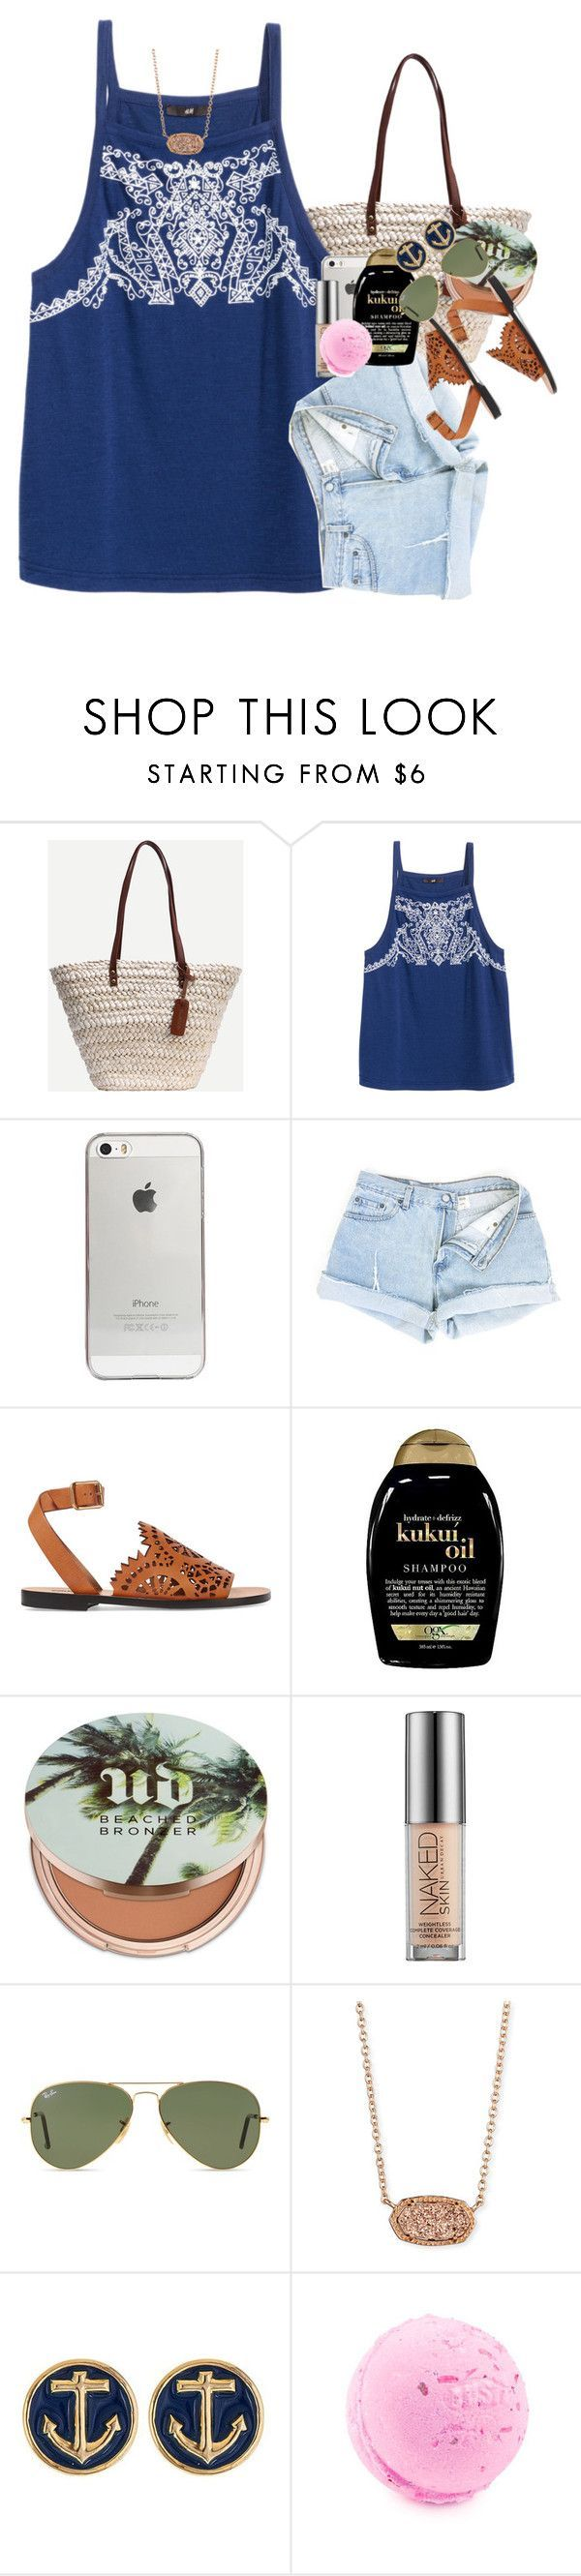 """""""forever21 is like my fav store evaa"""" by ellaswiftie13 ❤ liked on Polyvore featuring Agent 18, Chloé, Organix, Urban Decay, Ray-Ban and Kendra Scott"""